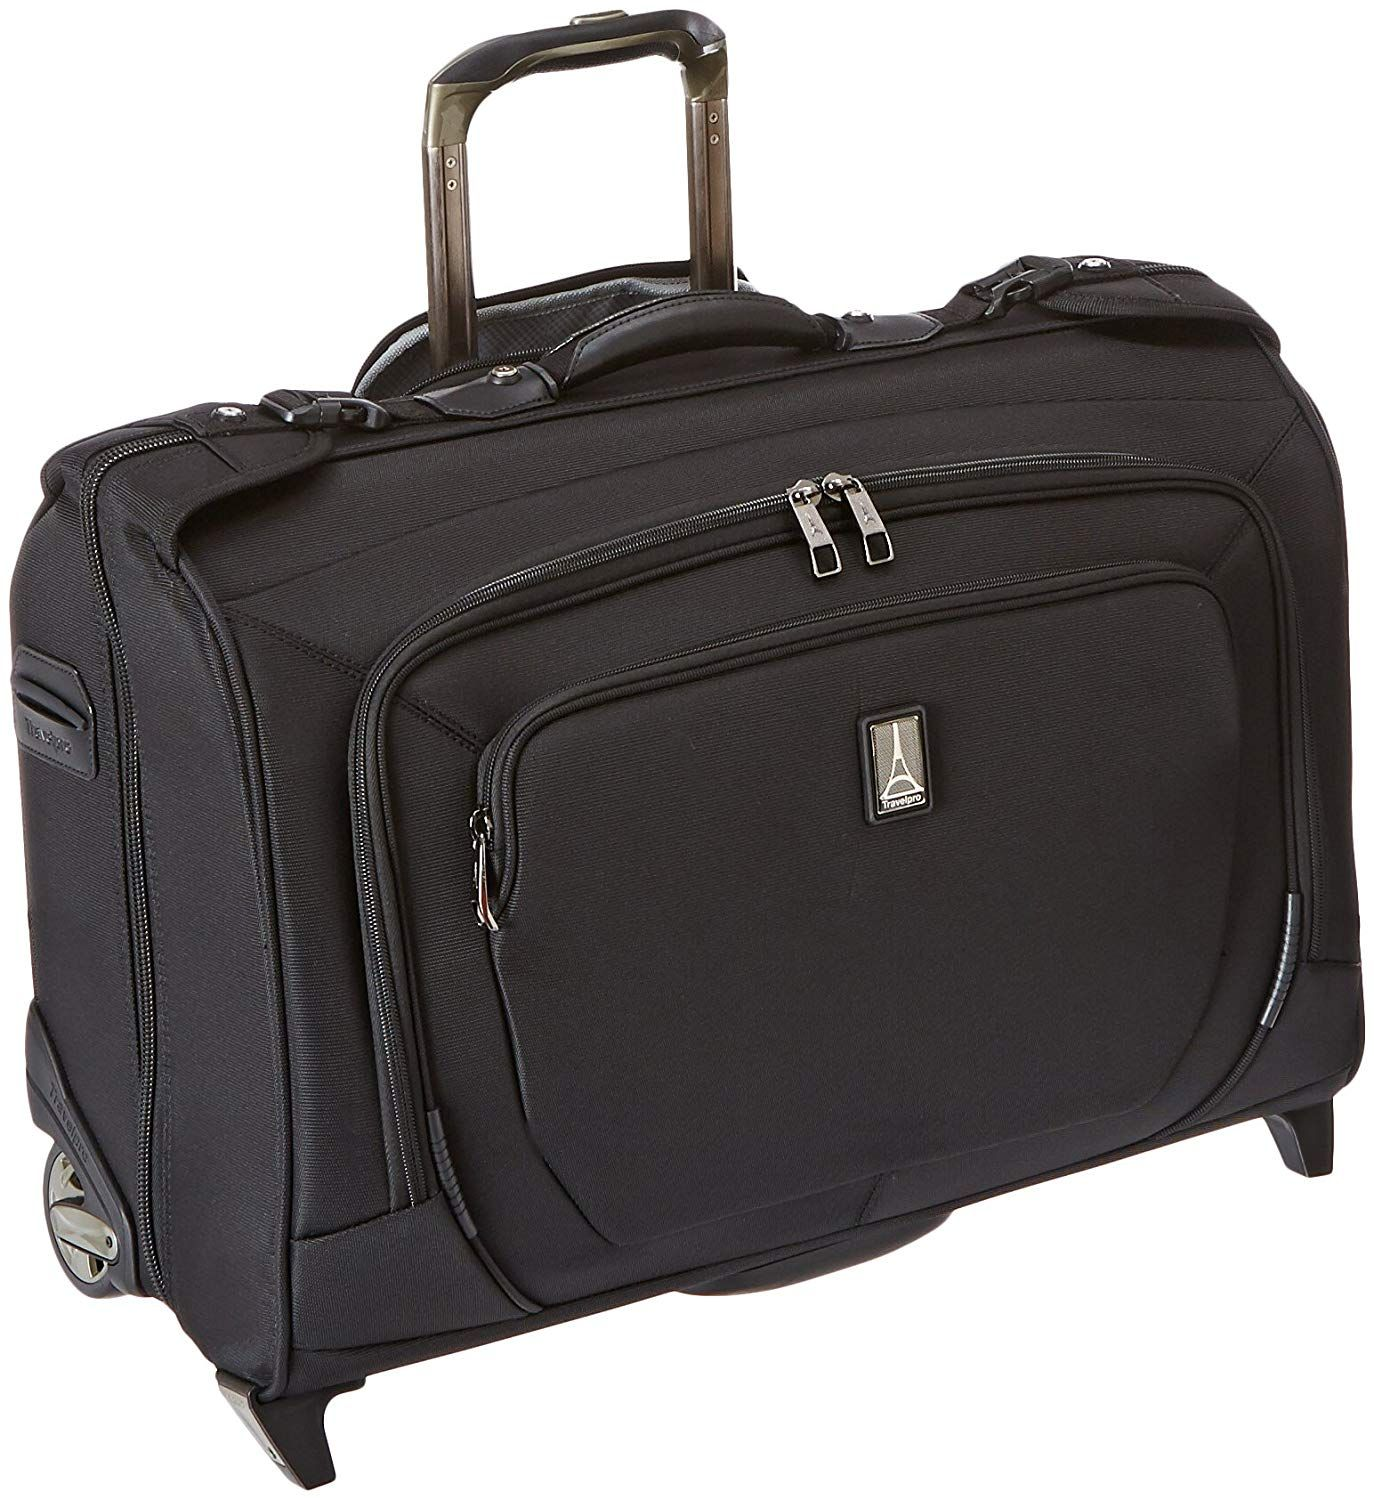 Travelpro Crew 10 Luggage Sets, Best Carry On Luggage, Travel Luggage,  Travel Bags af39a84def